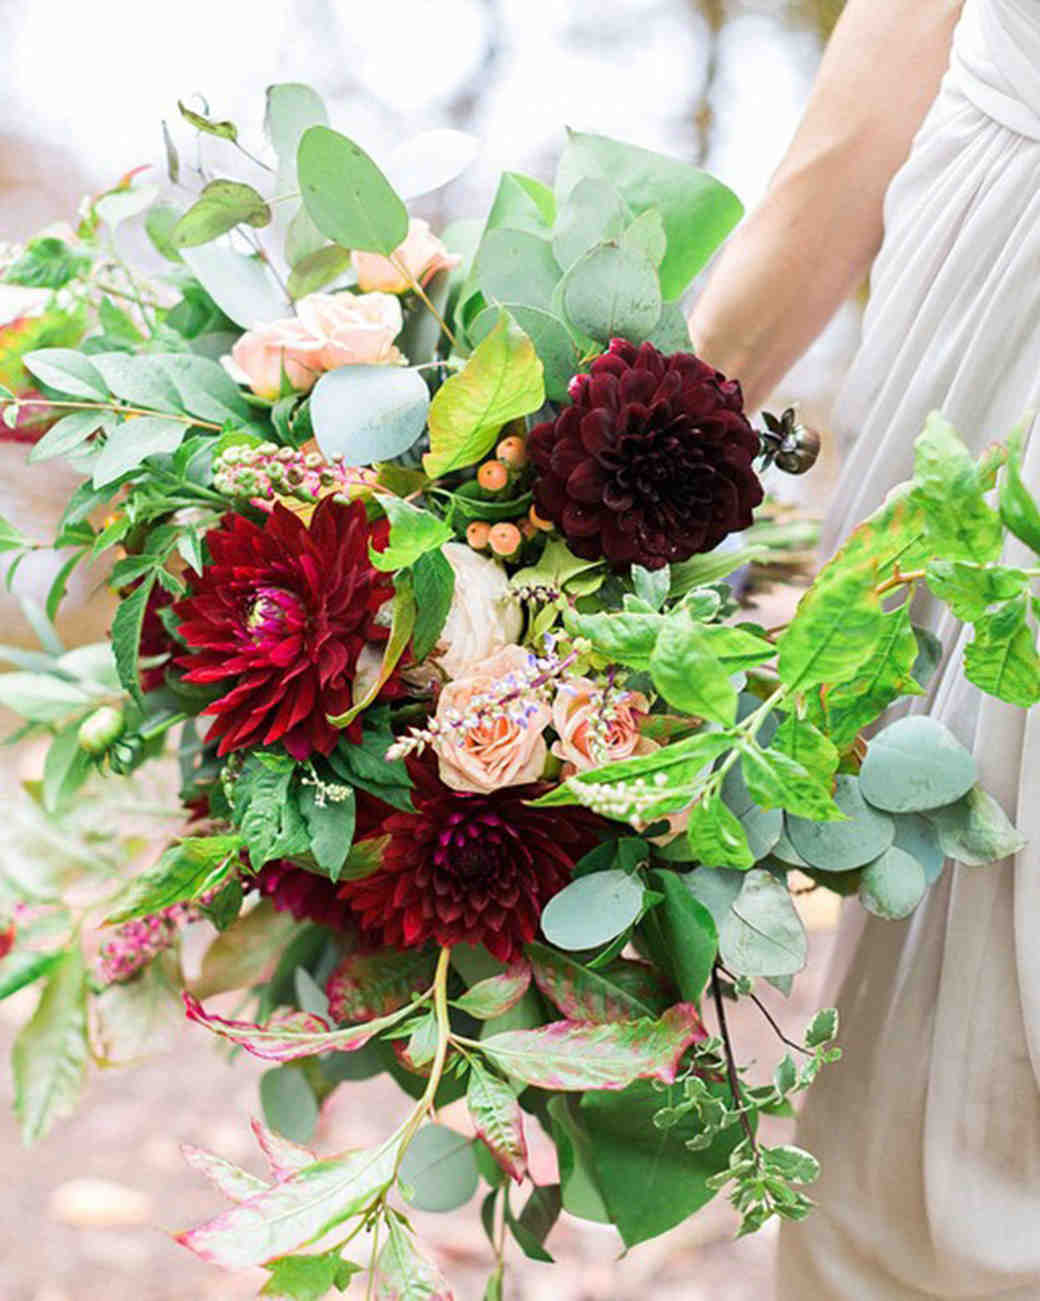 Forum on this topic: Autumn Weddings – Which Flowers to Choose, autumn-weddings-which-flowers-to-choose/